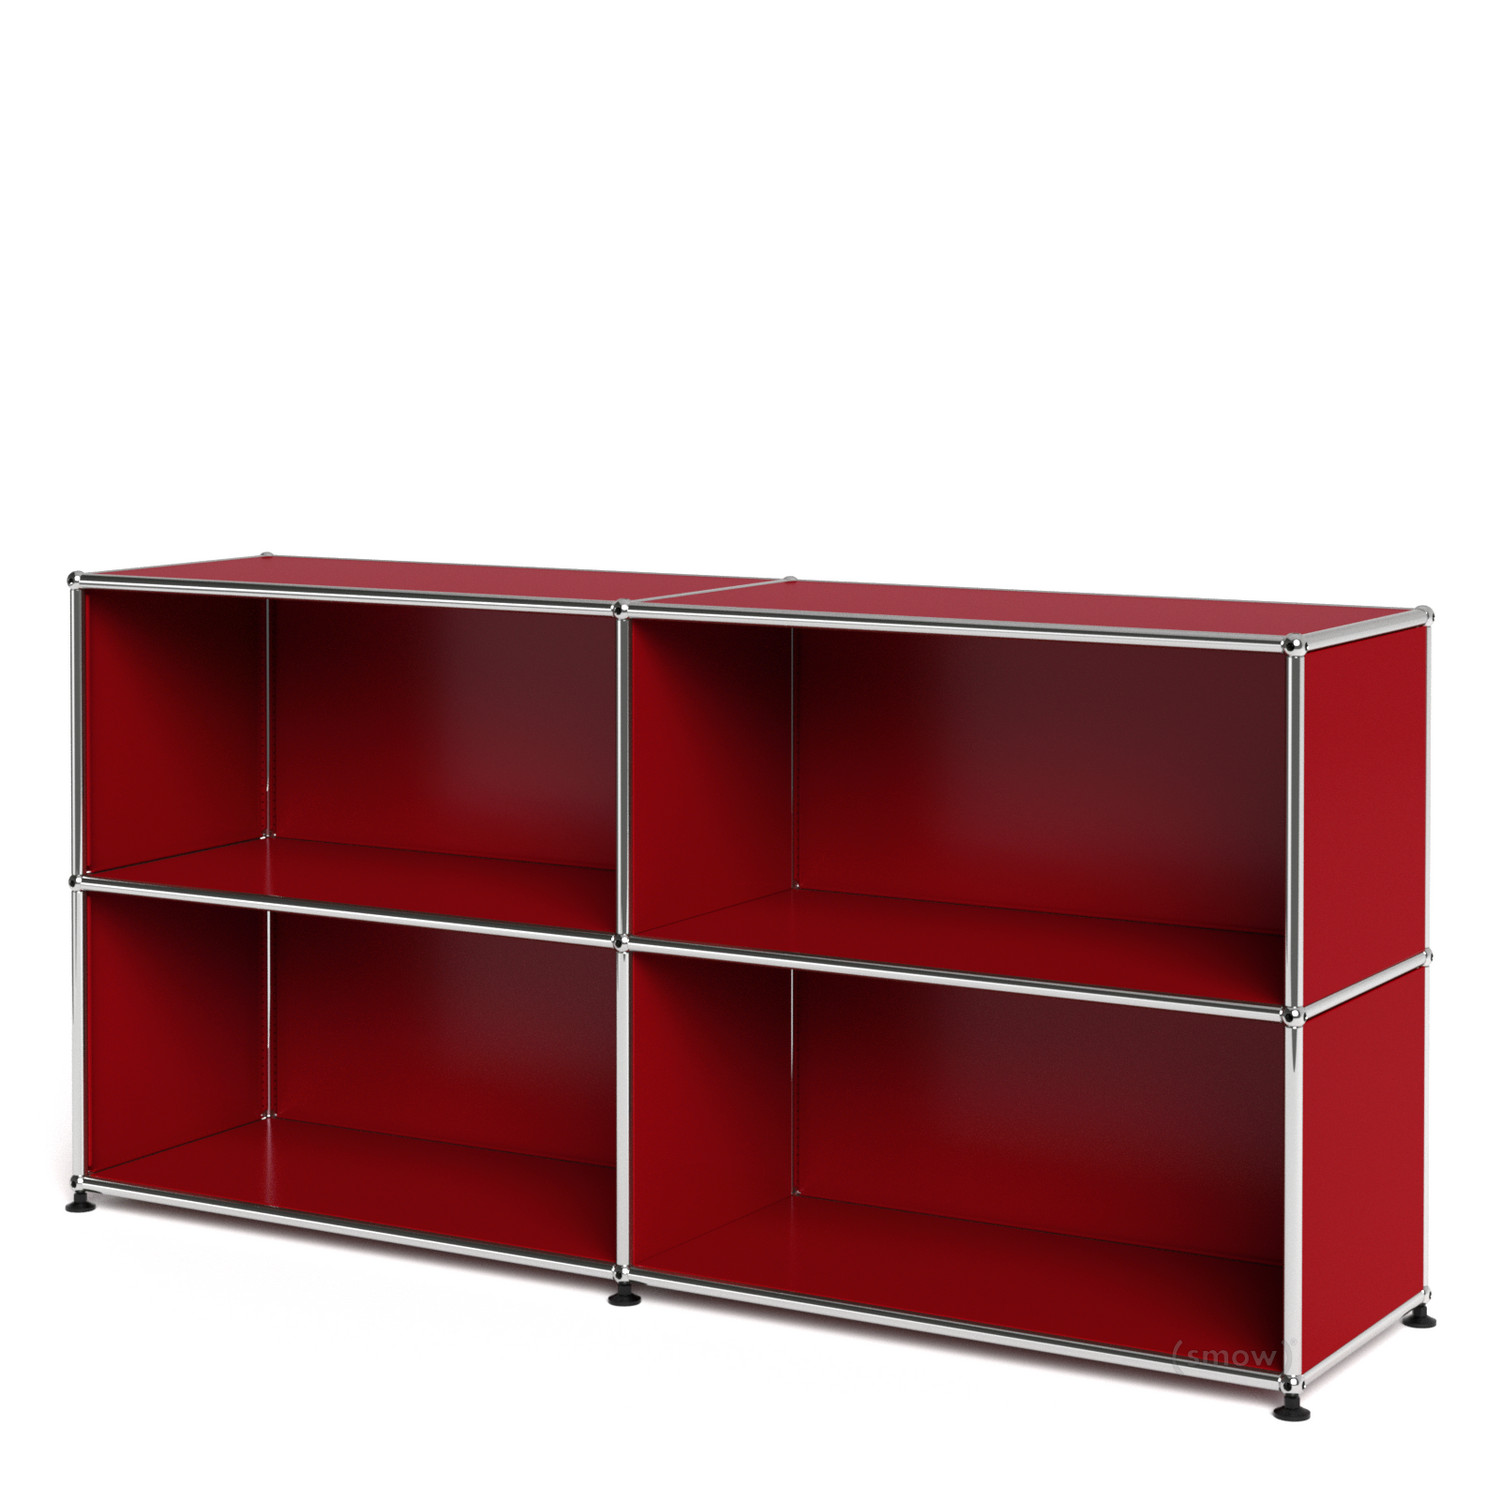 usm haller sideboard l open usm ruby red by fritz haller. Black Bedroom Furniture Sets. Home Design Ideas